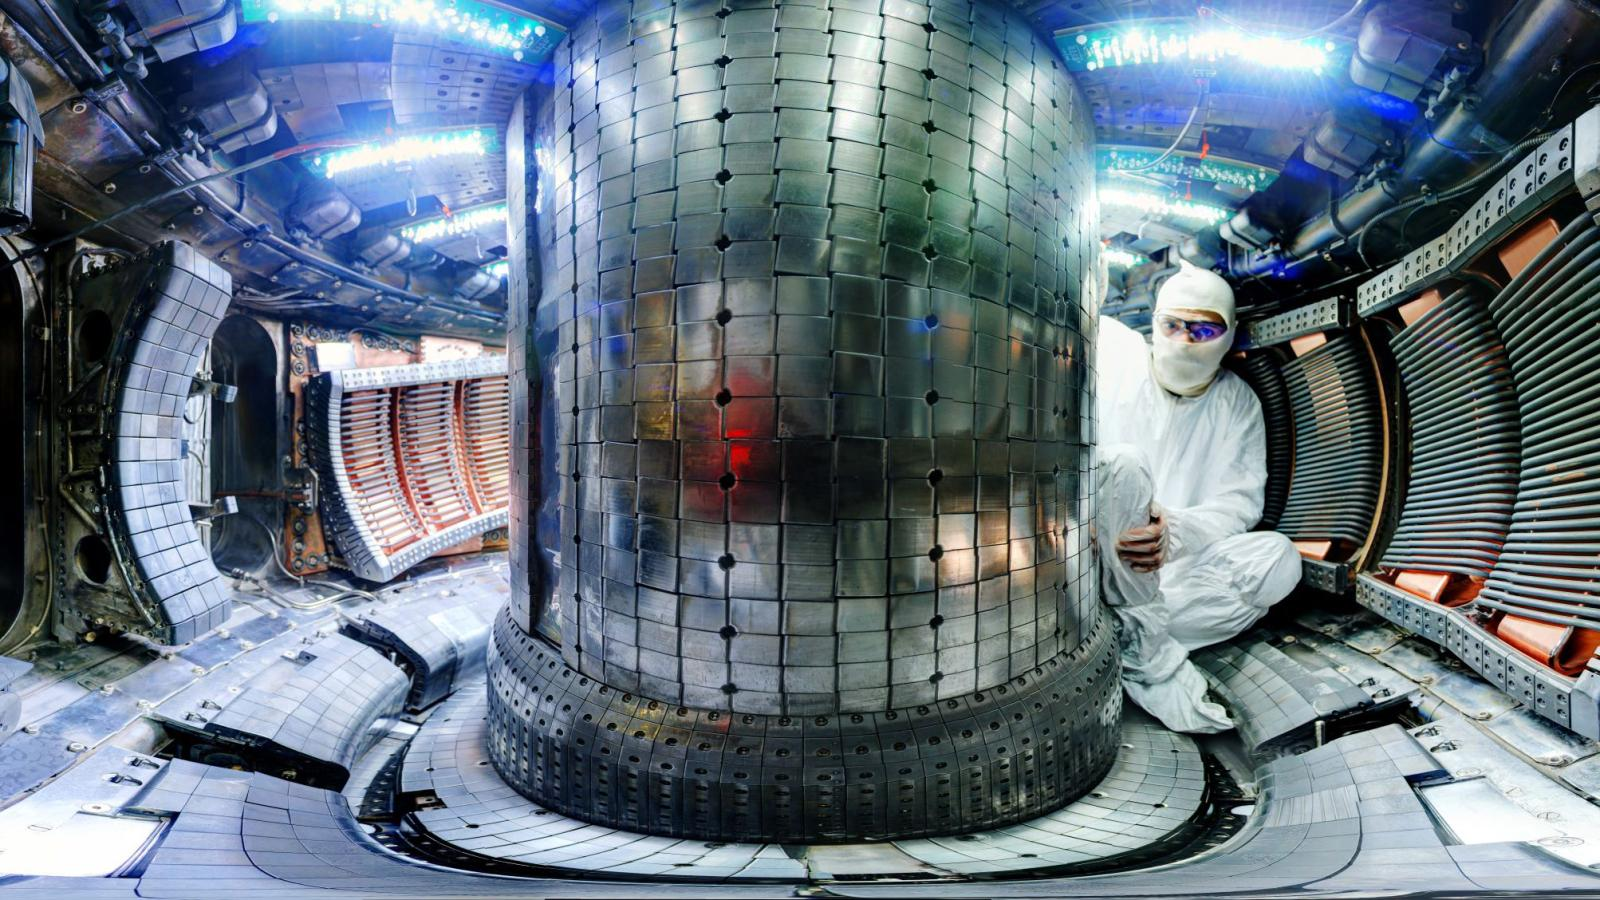 In search of clean energy, investments in nuclear-fusion startups are heating up